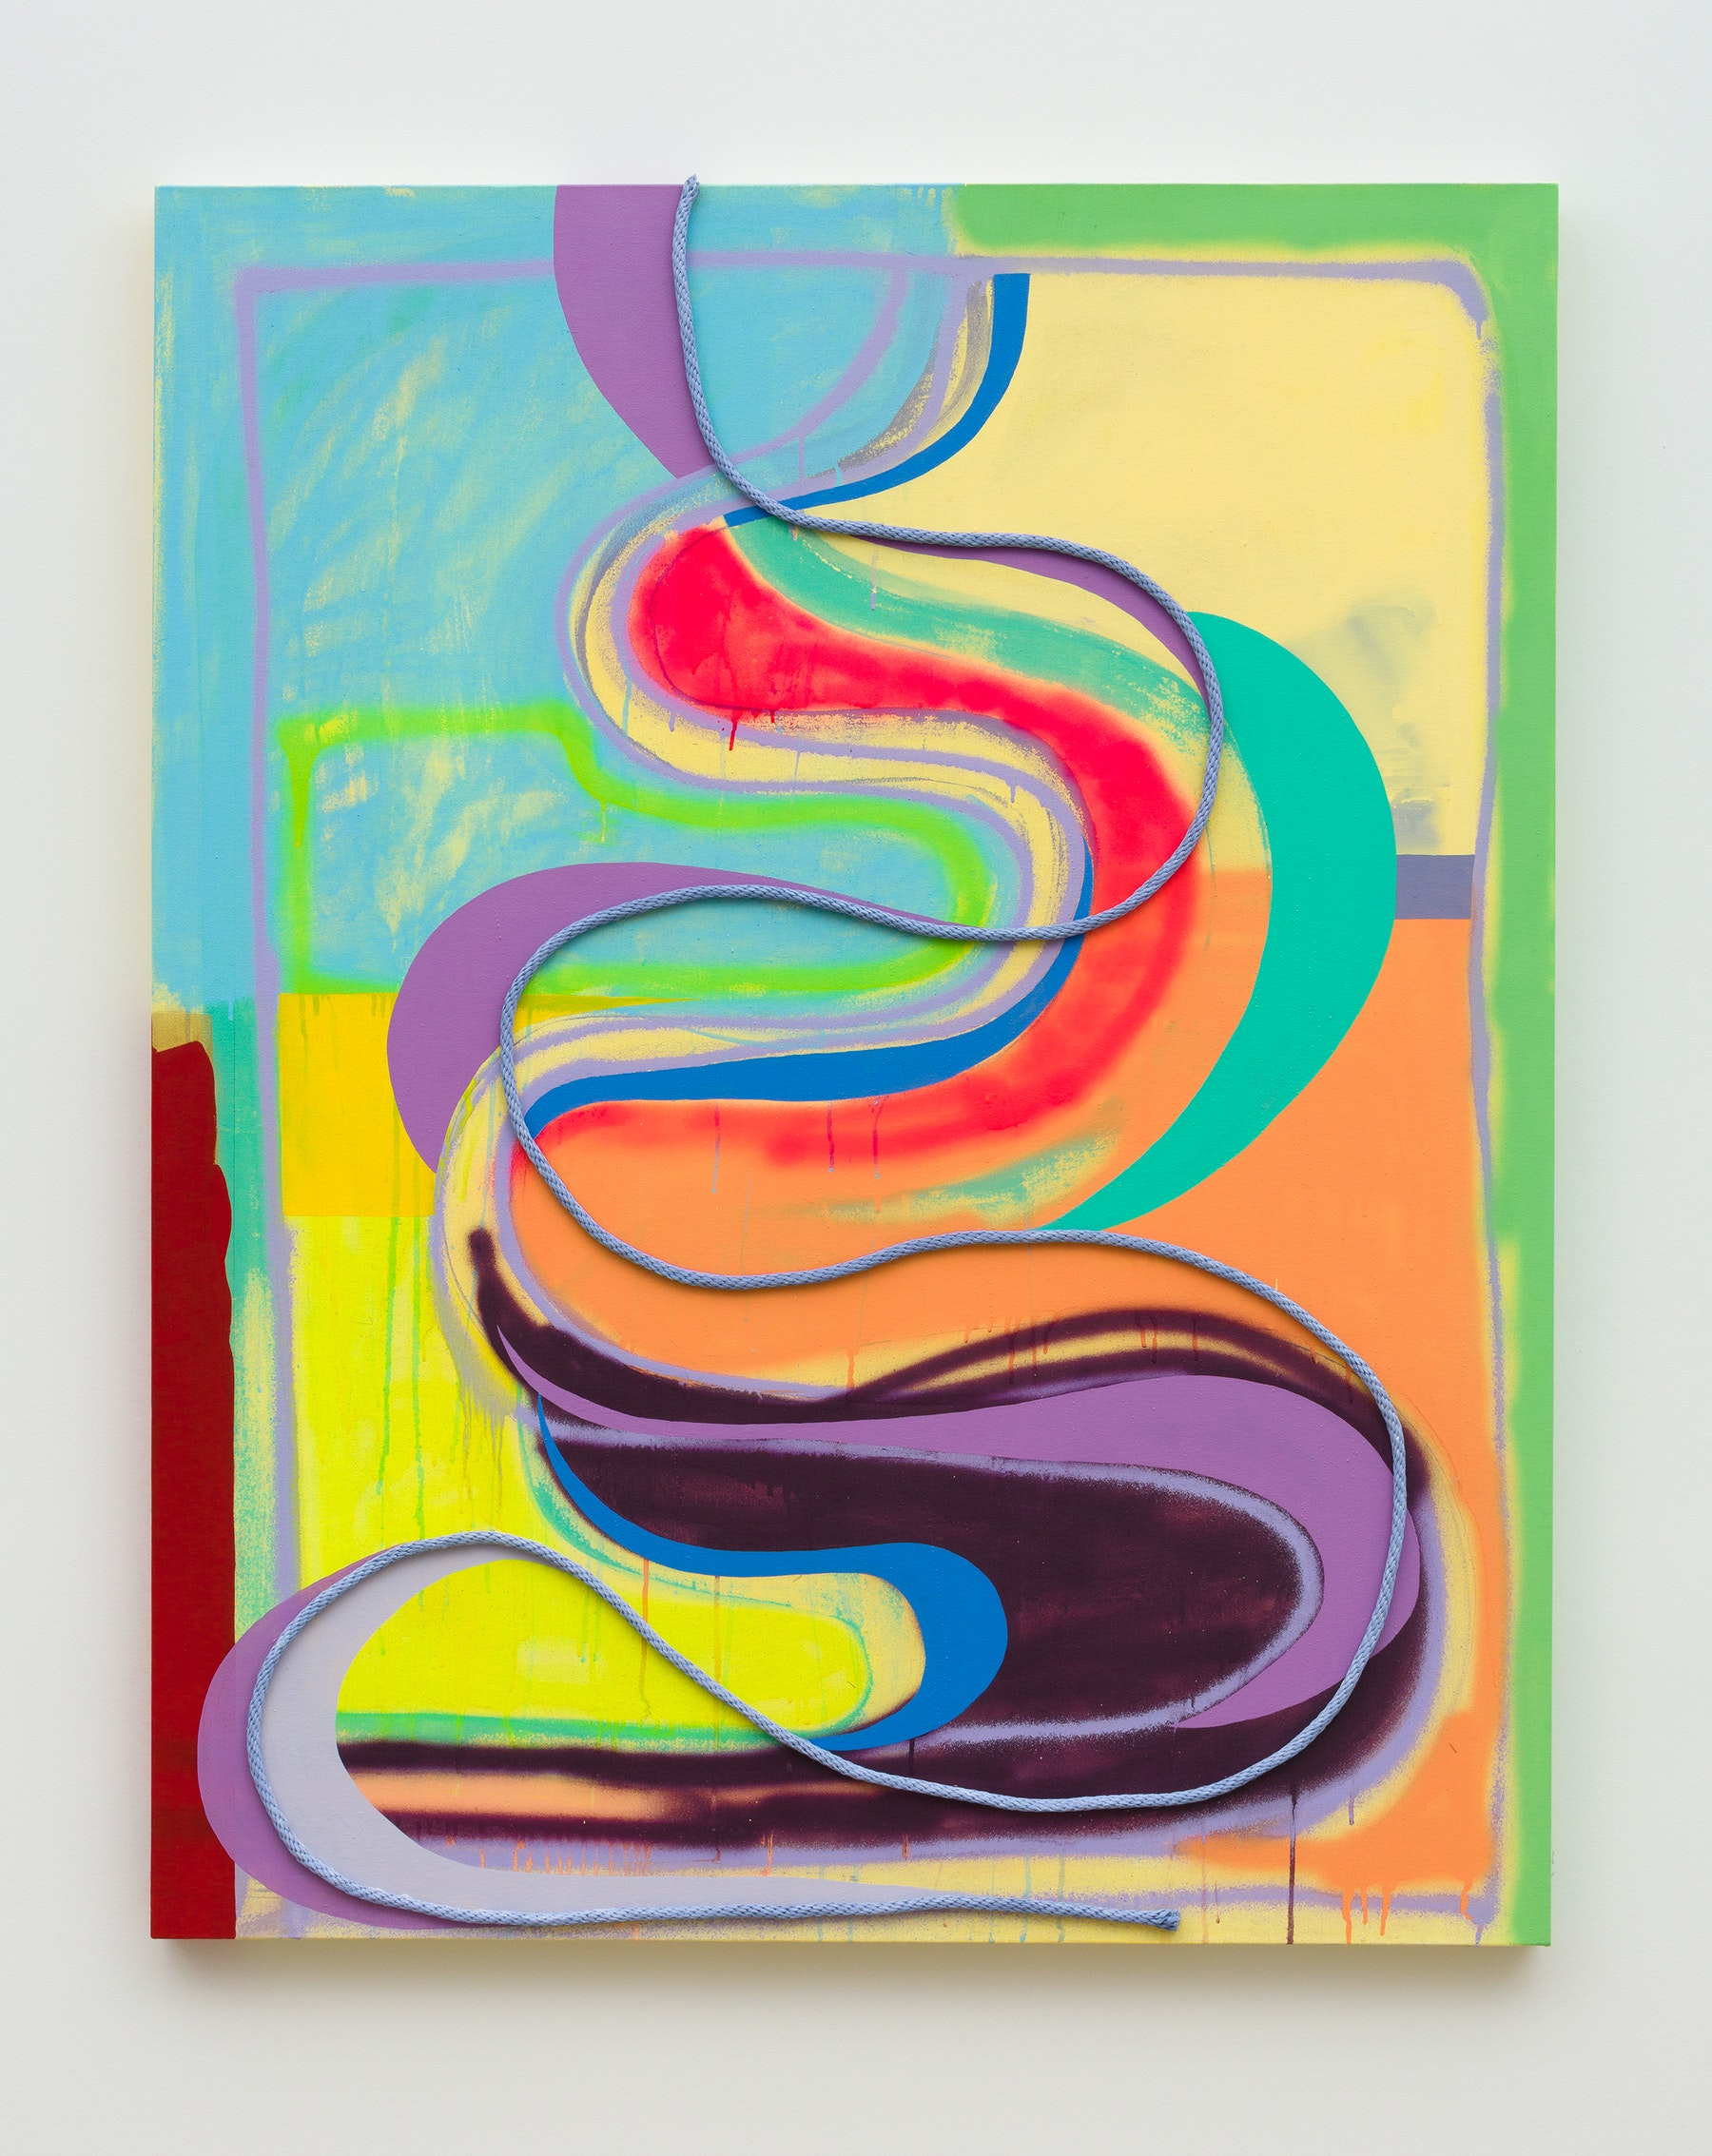 """Sarah Cain """"The possibility of overcoming negative thought,"""" 2020 Acrylic, latex, on rope and canvas 60 x 48 x 2.5"""" [HxWxD] (152.4 x 121.92 x 6.35 cm) Inventory #CAS127 Courtesy of the artist and Vielmetter Los Angeles Photo credit: Jeff McLane"""